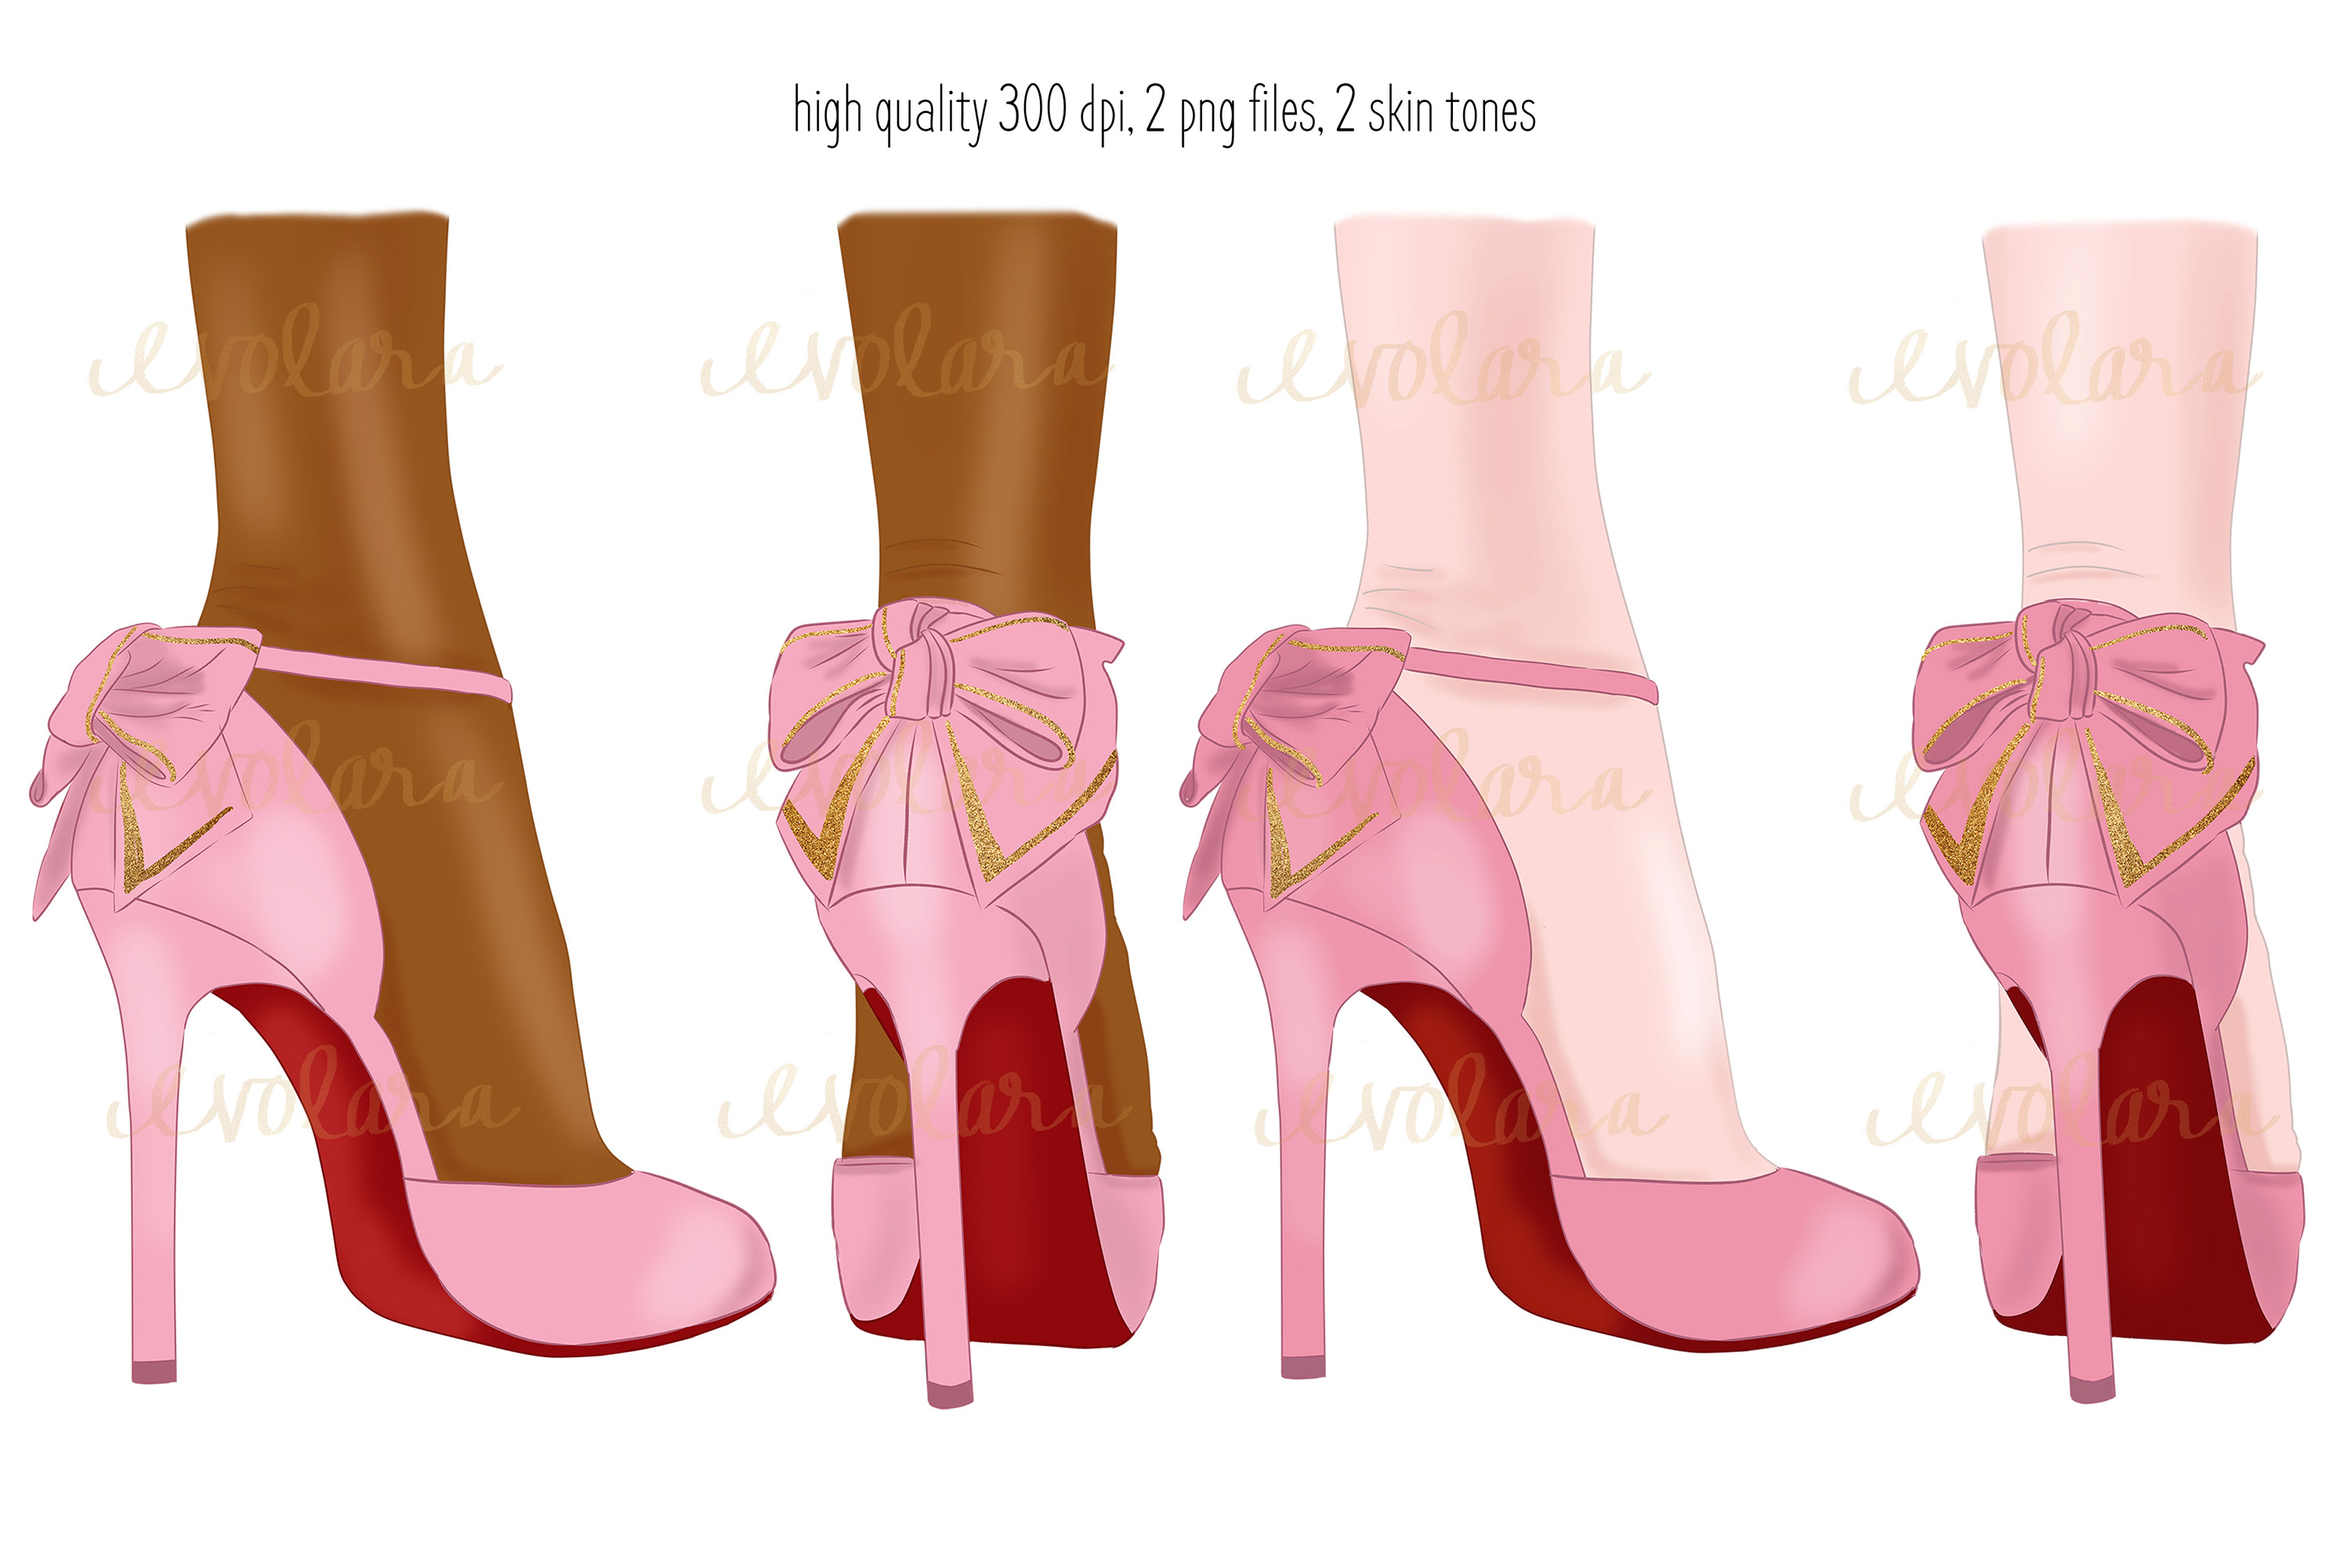 High Heel Shoes Clipart Pink Heels Fashion Illustrations example image 2